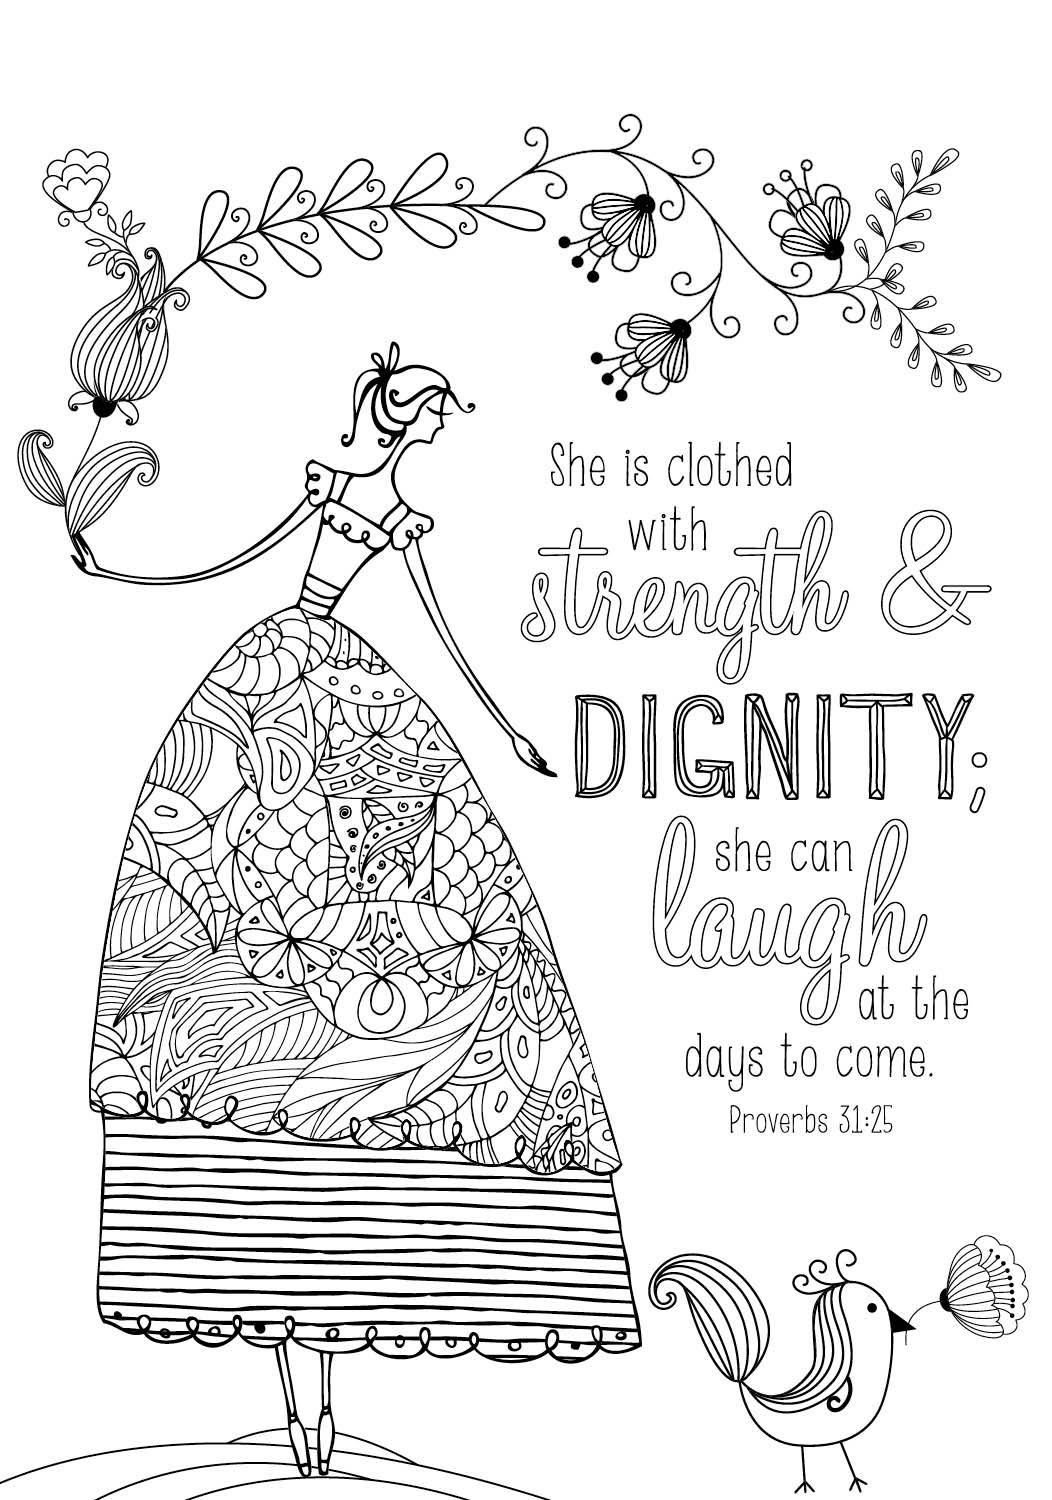 black and white bible coloring pages | Bible Coloring Pages – coloring.rocks!